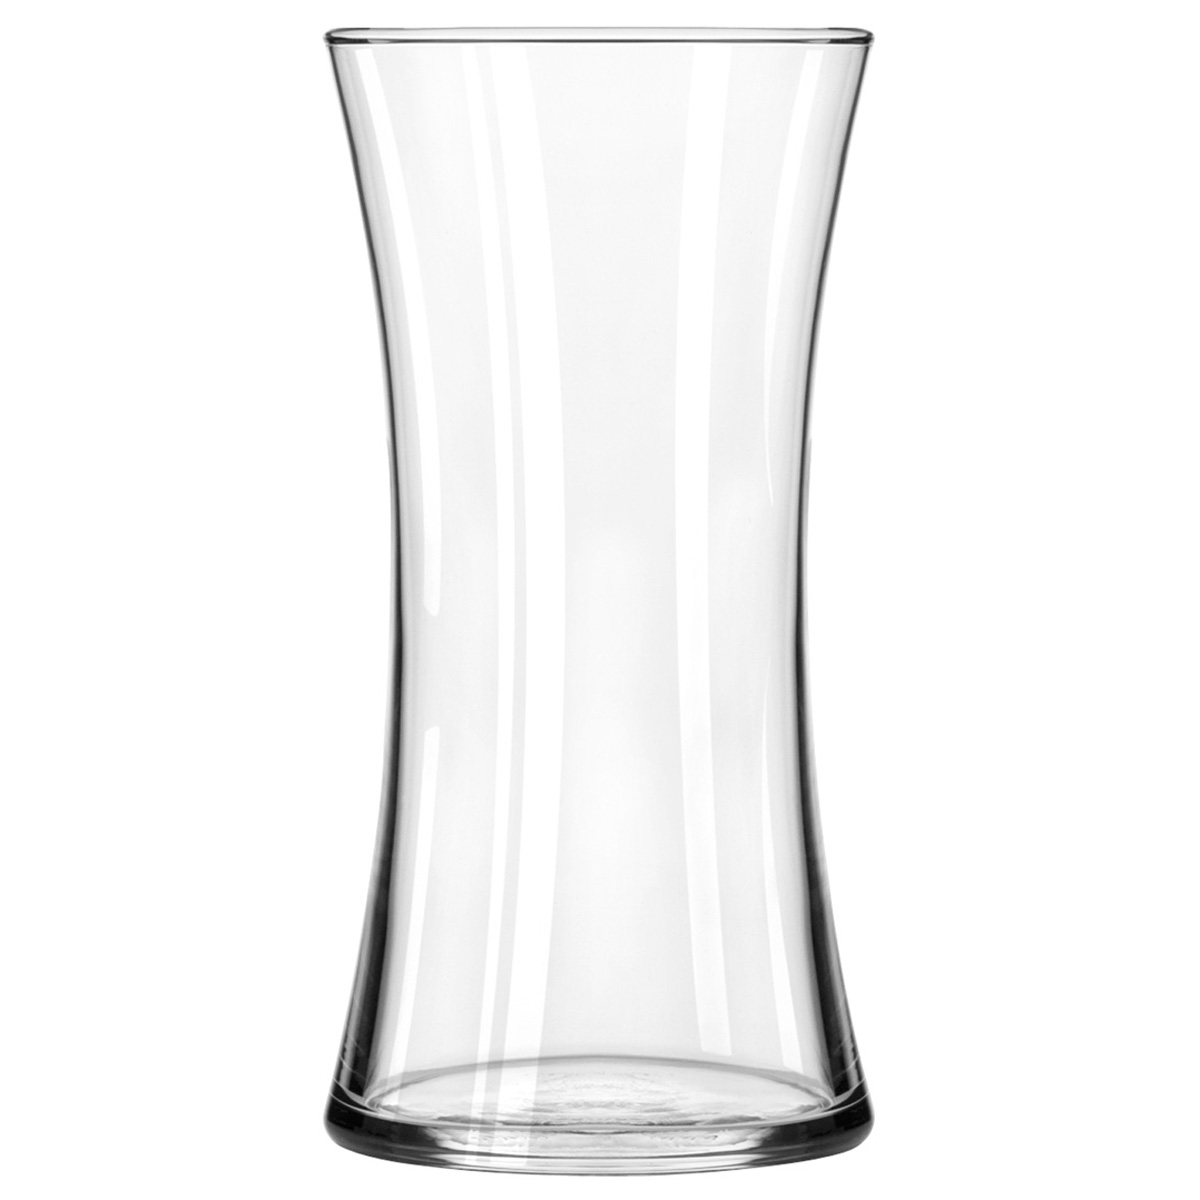 Libbey Glass Tower Vase